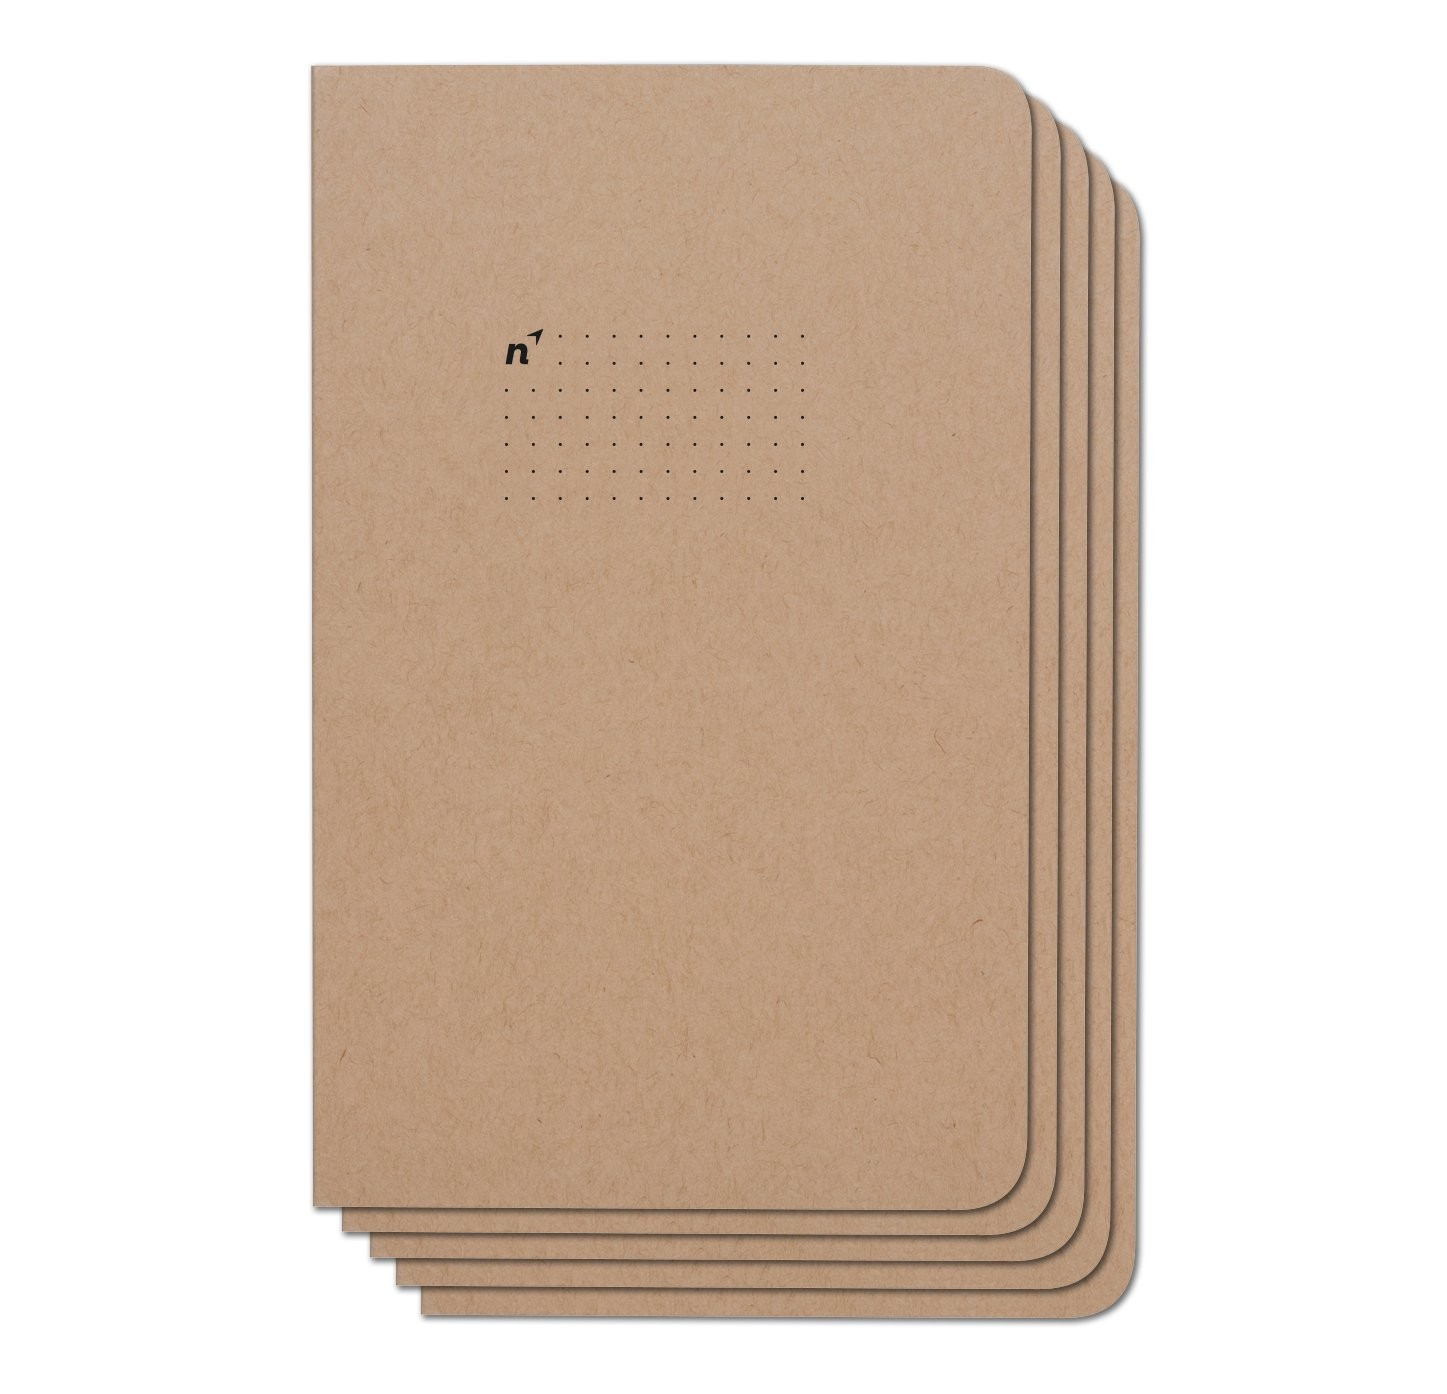 Amazon Dotted Bullet Notebook Journal 5 Notebooks with Dot Grid Pages Premium Thick Paper BuJo